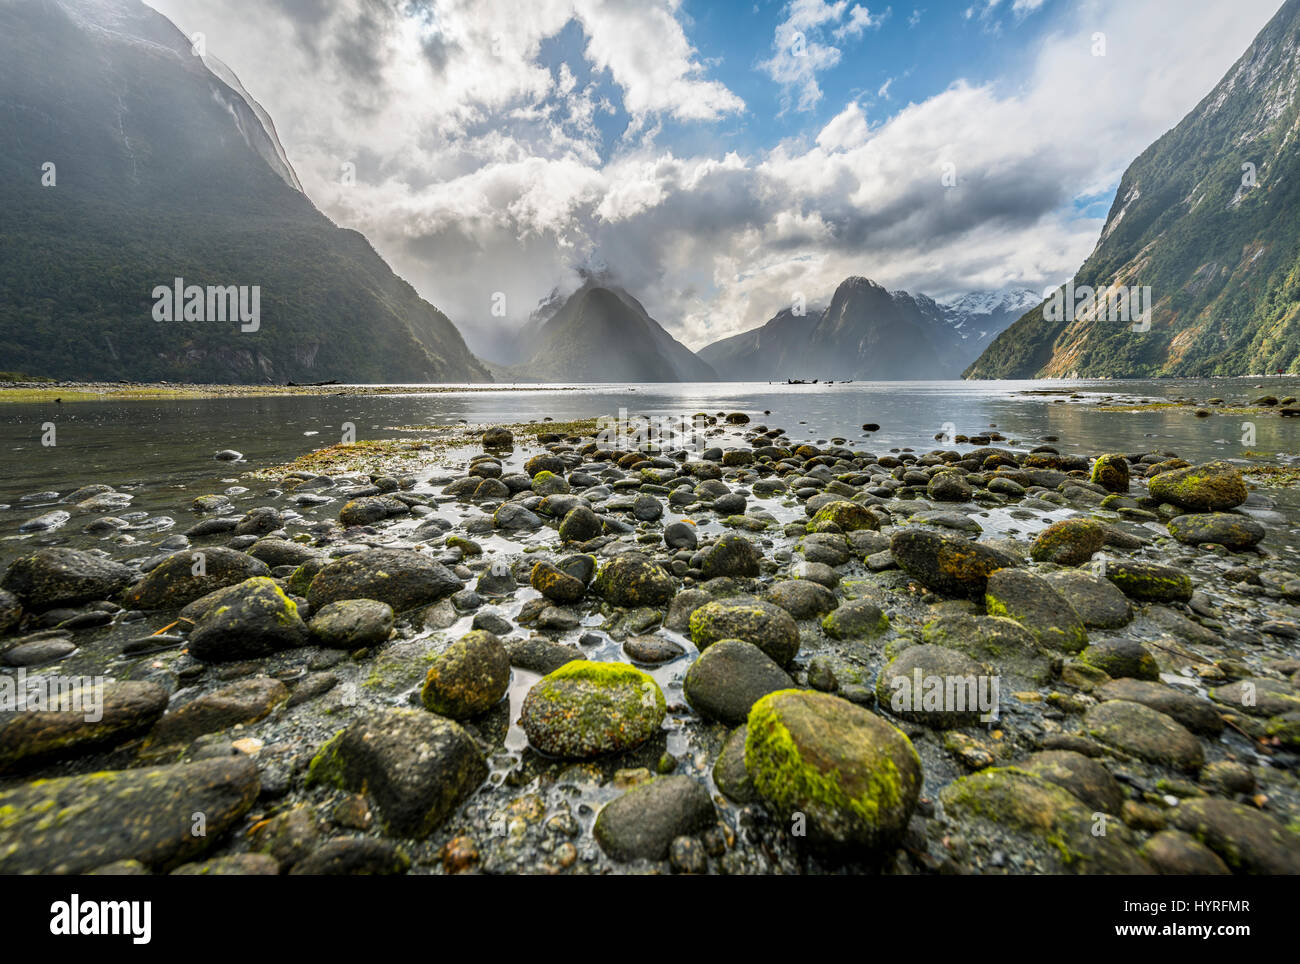 Moss covered stones, Miter Peak, Milford Sound, Fiordland National Park, Te Anau, Southland Region, Southland, New - Stock Image